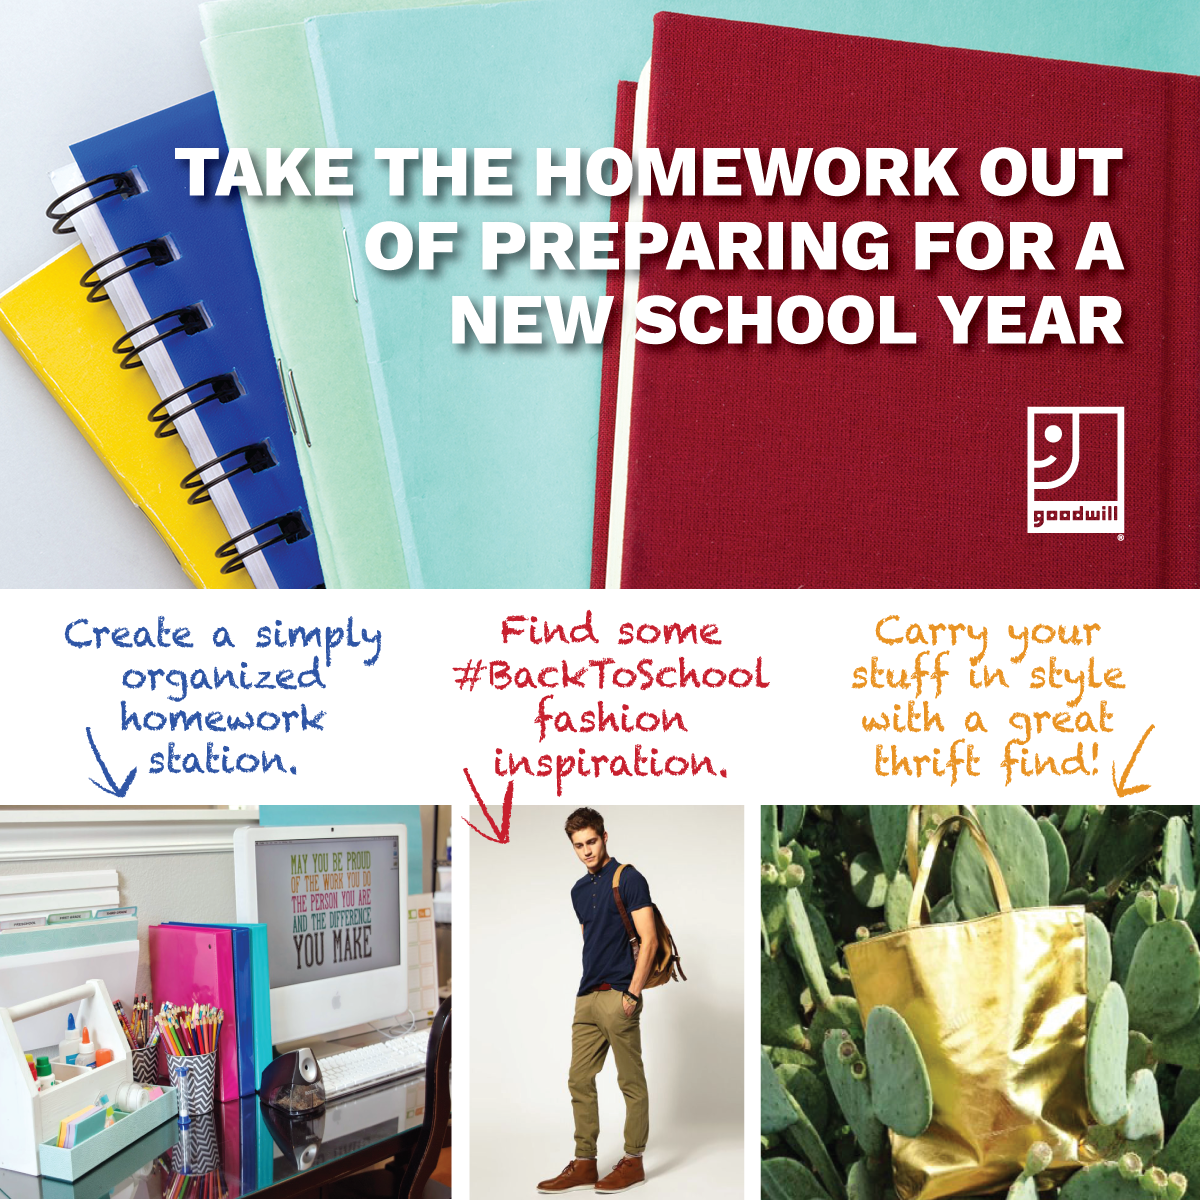 Take the homework out of preparing for a new school year